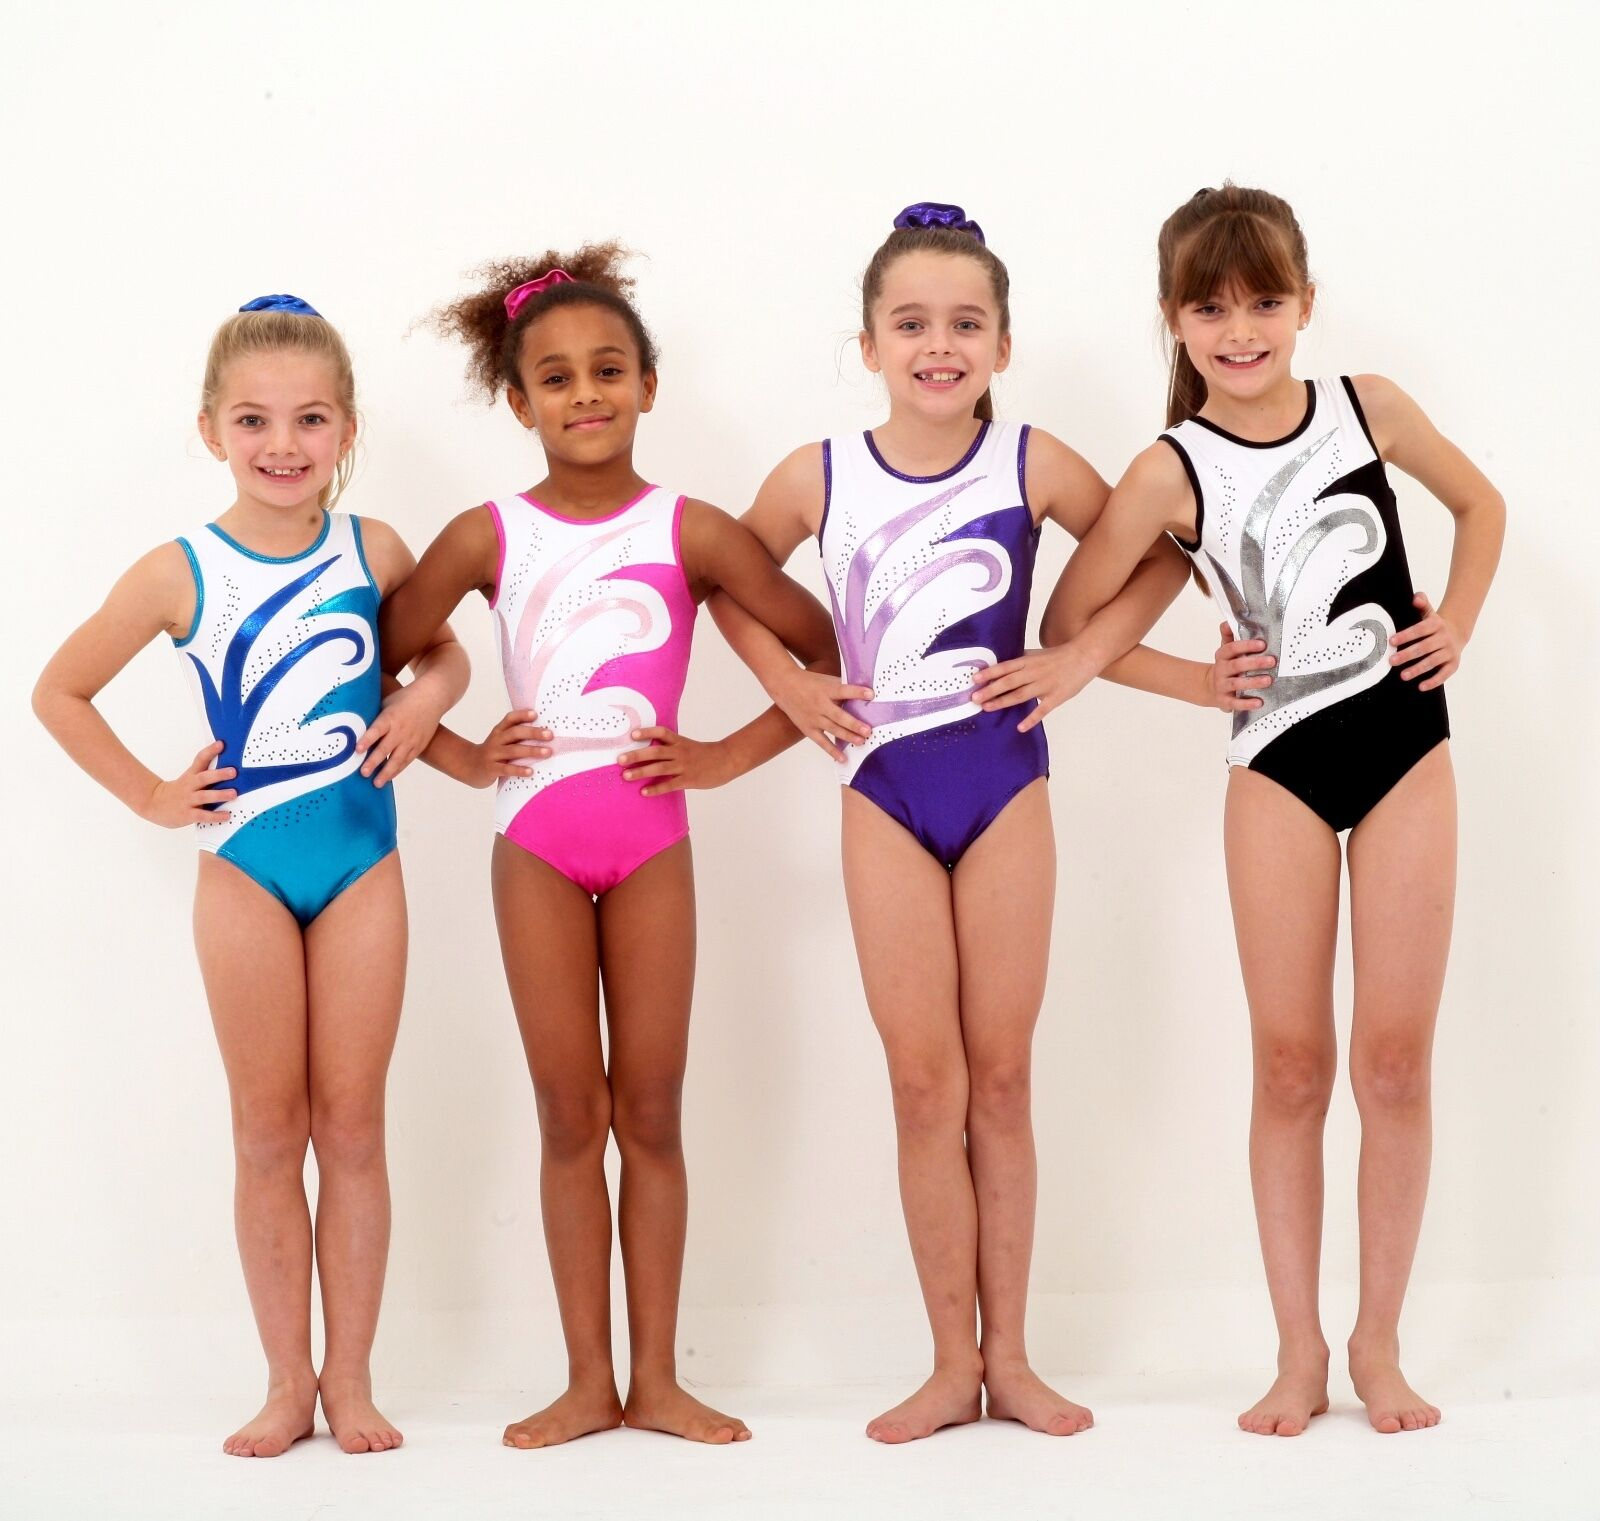 'Peta' girls gymnastics leotard Acro Acrobatics Age 5-18 - 26,28,30,32,34,36,38